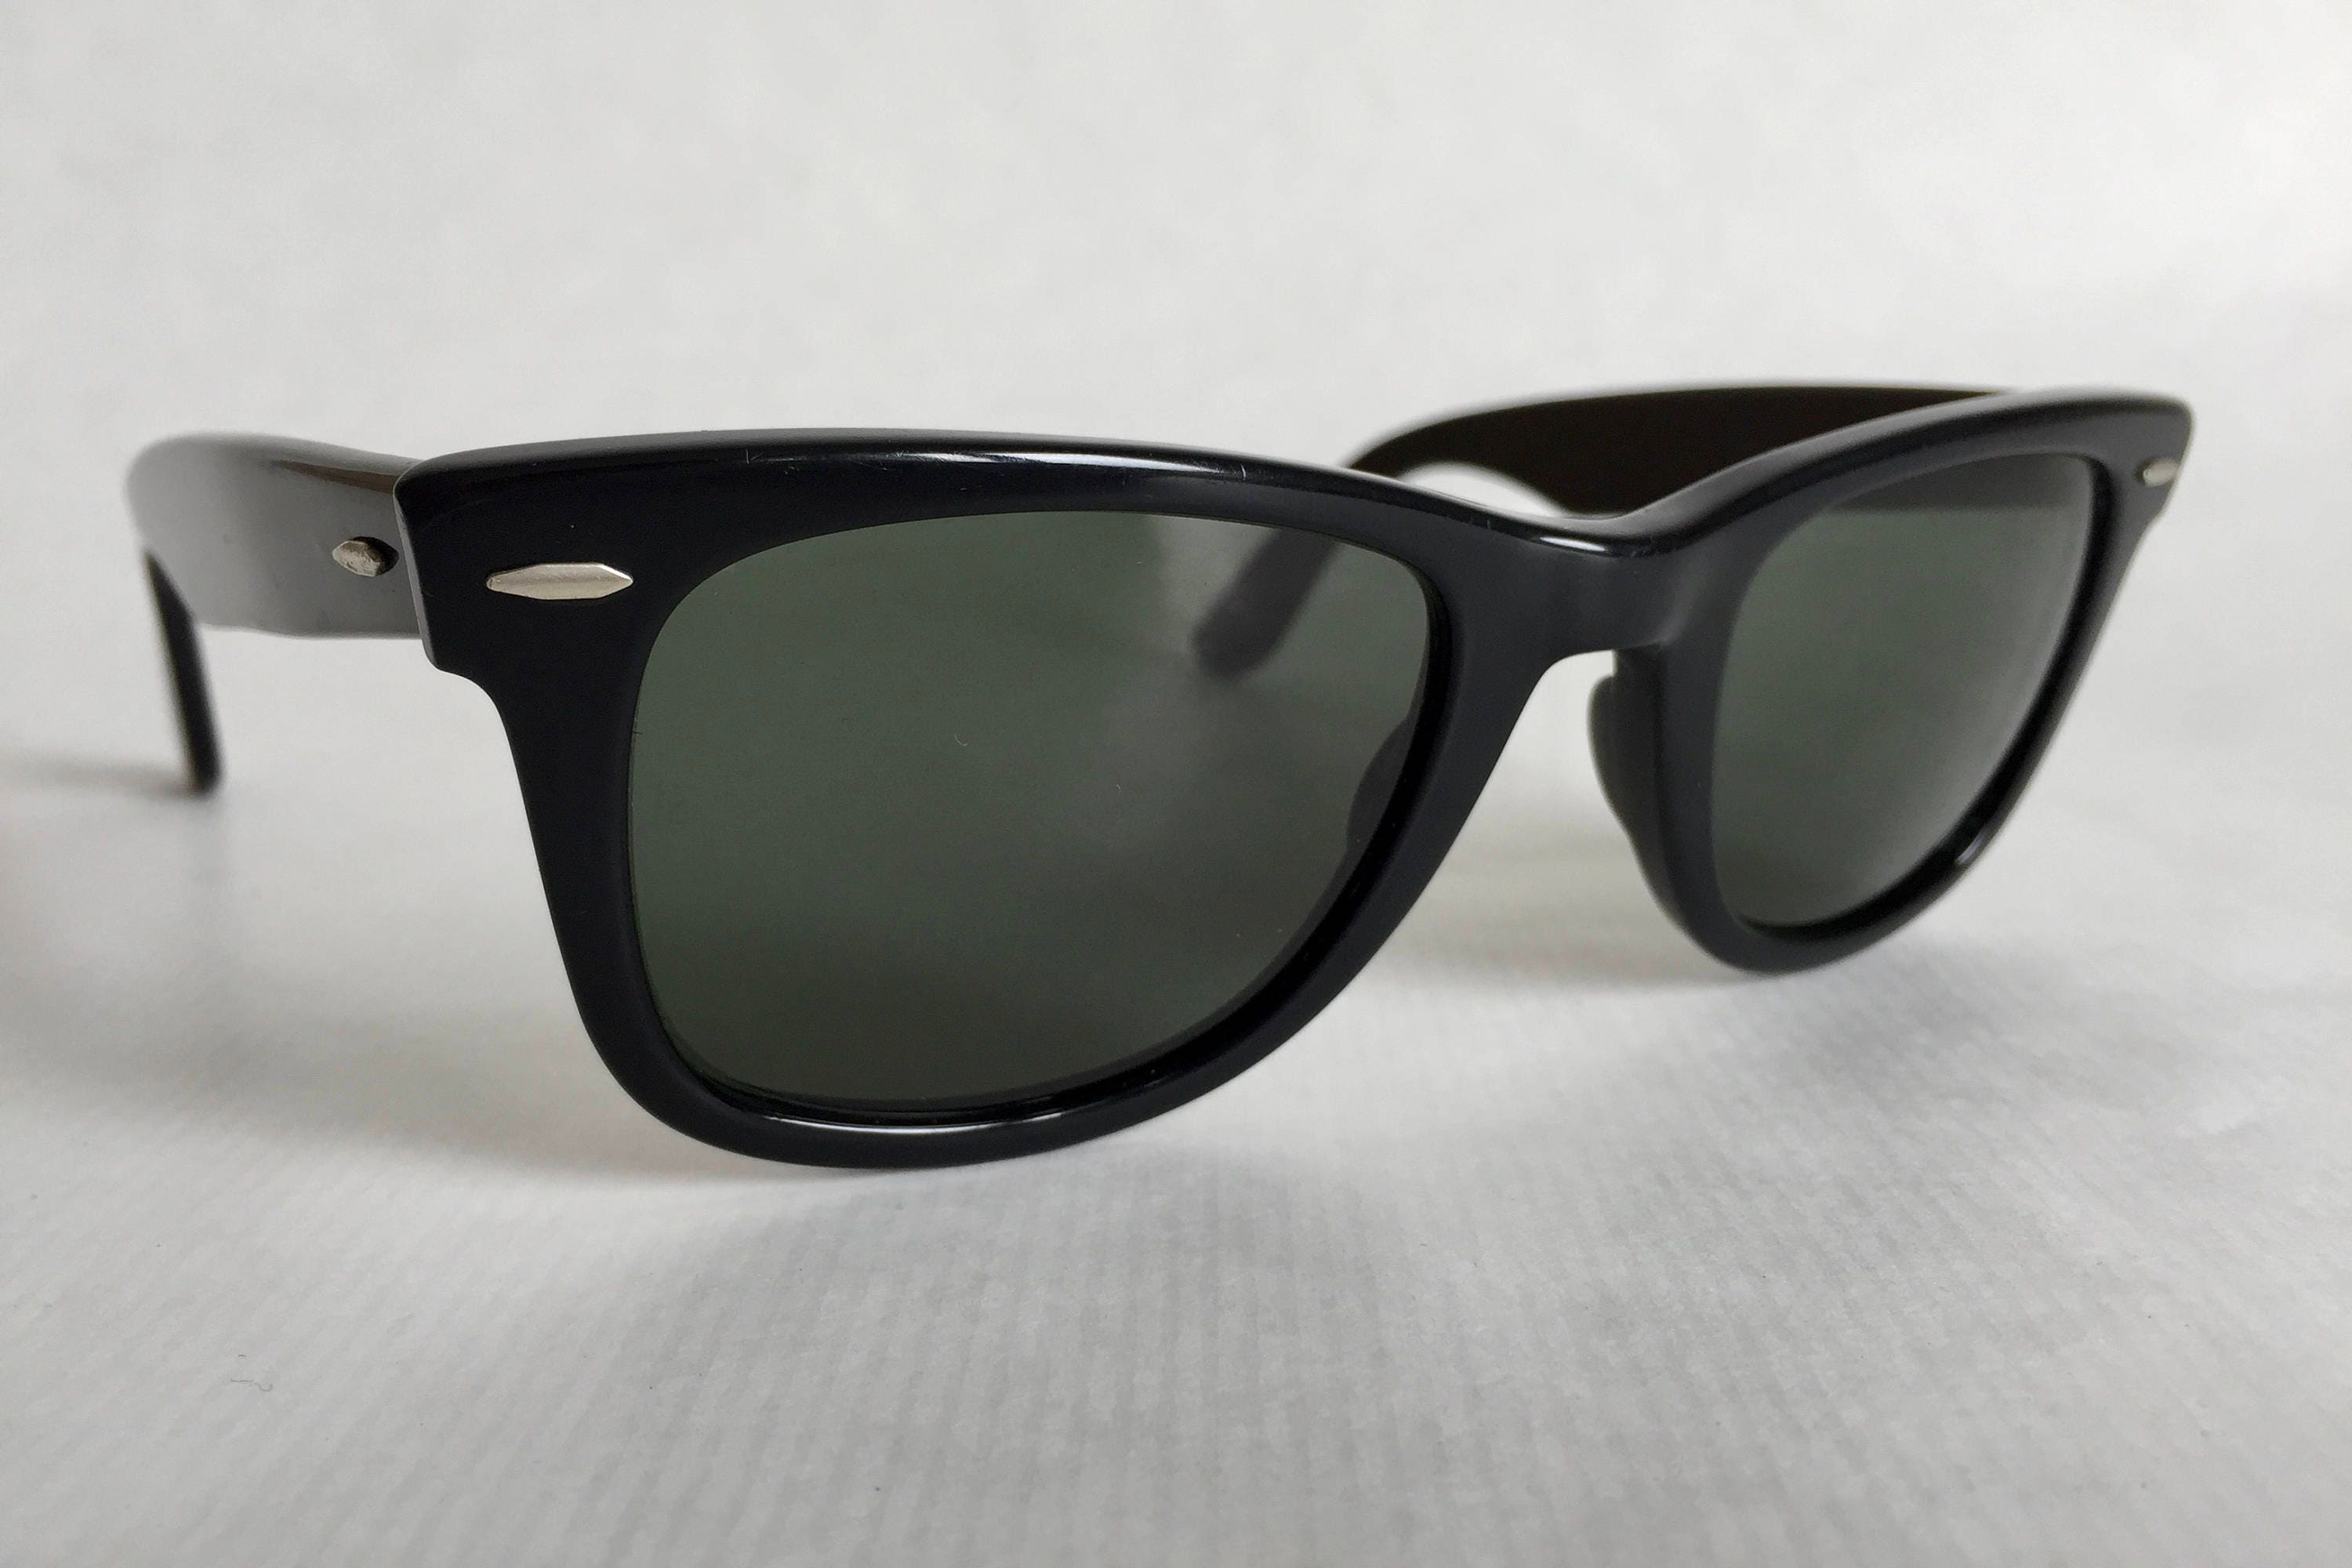 329c6f98d7 Ray-Ban WAYFARER by Bausch   Lomb Vintage Sunglasses First Generation.  gallery photo ...